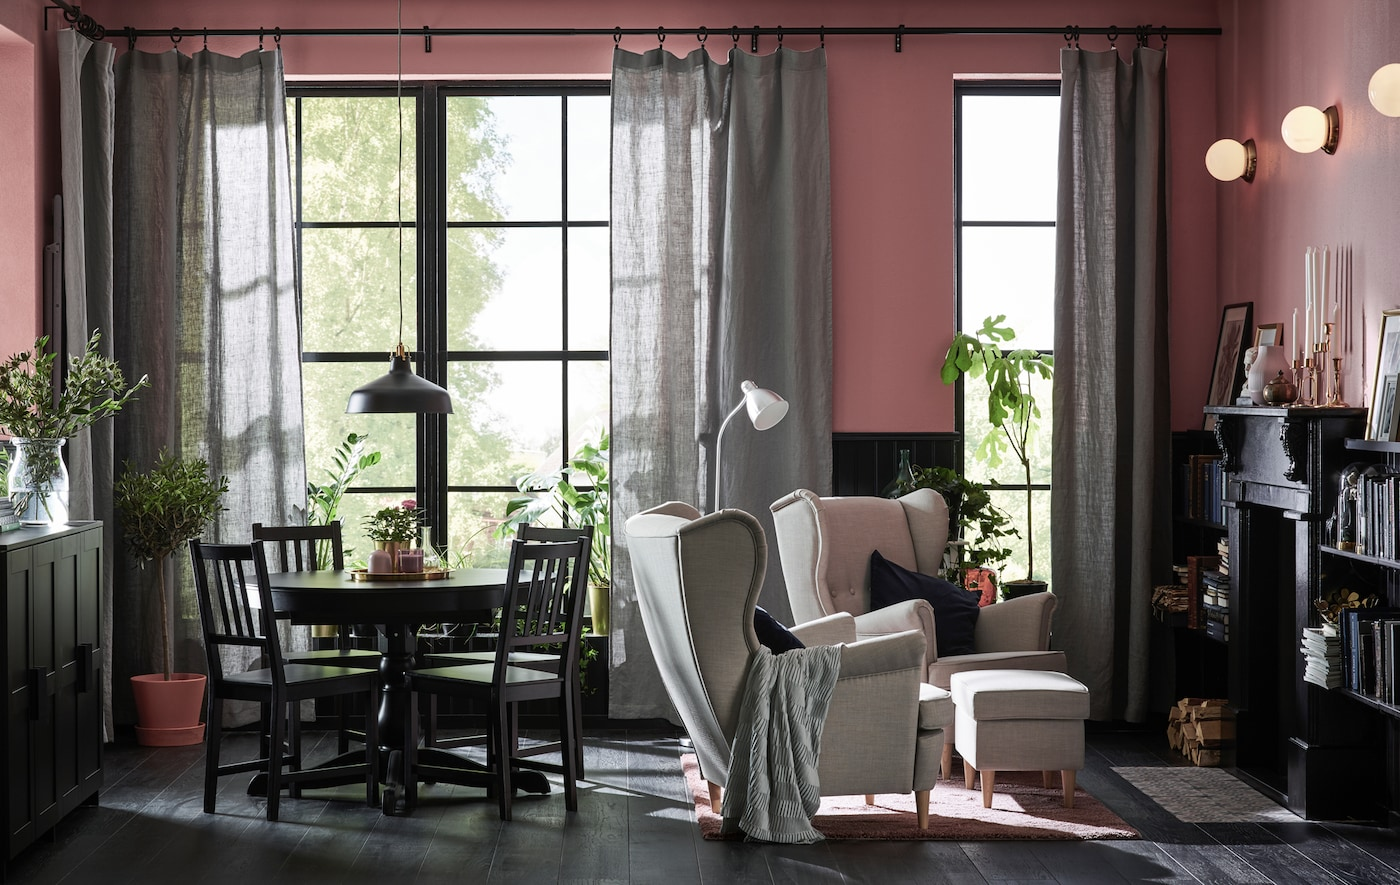 A living room with large windows is decorated in shades of black, mauve and grey-green.